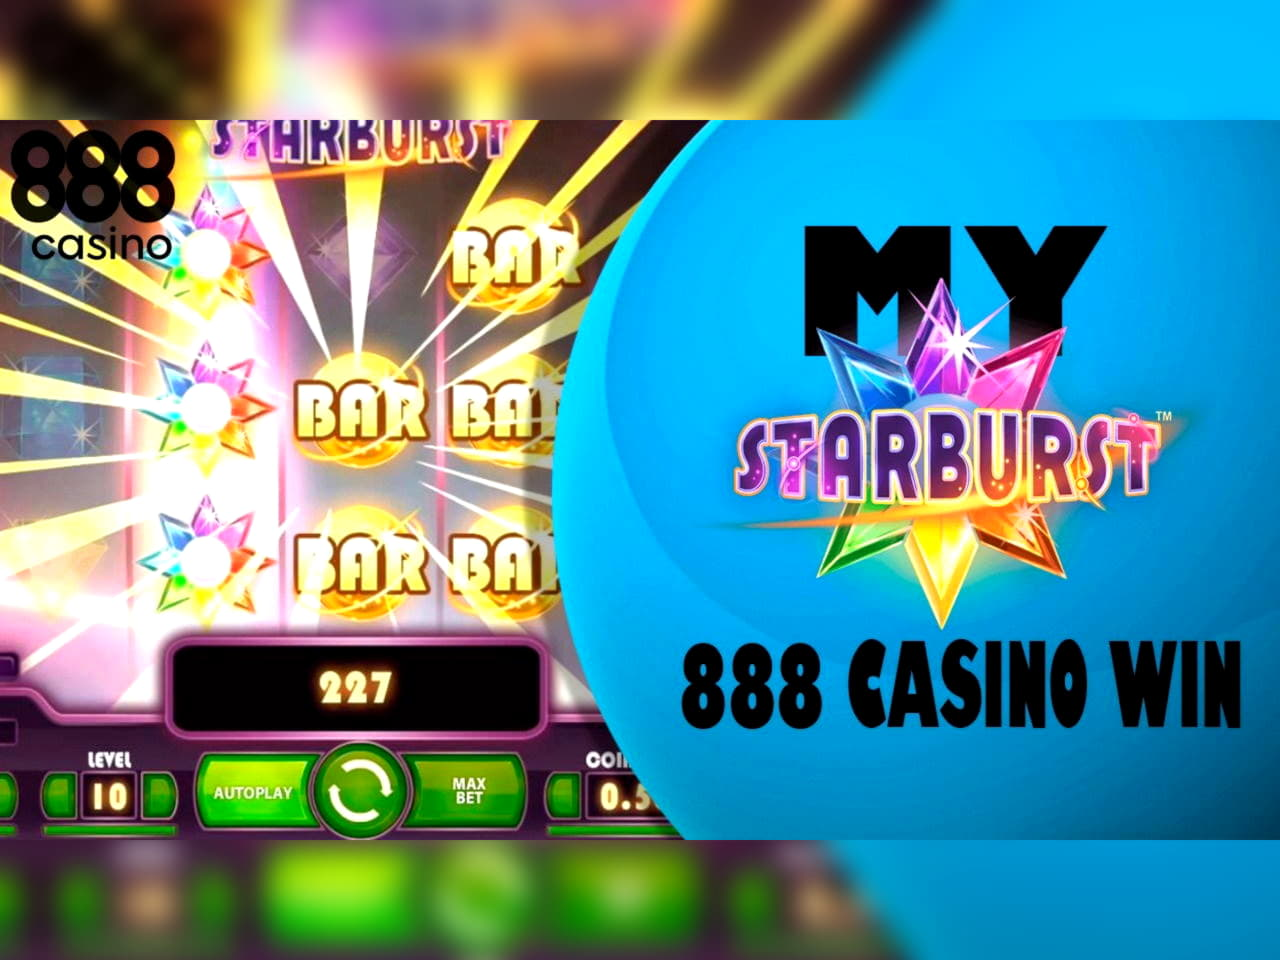 245% Signup casino bonus at Casino com